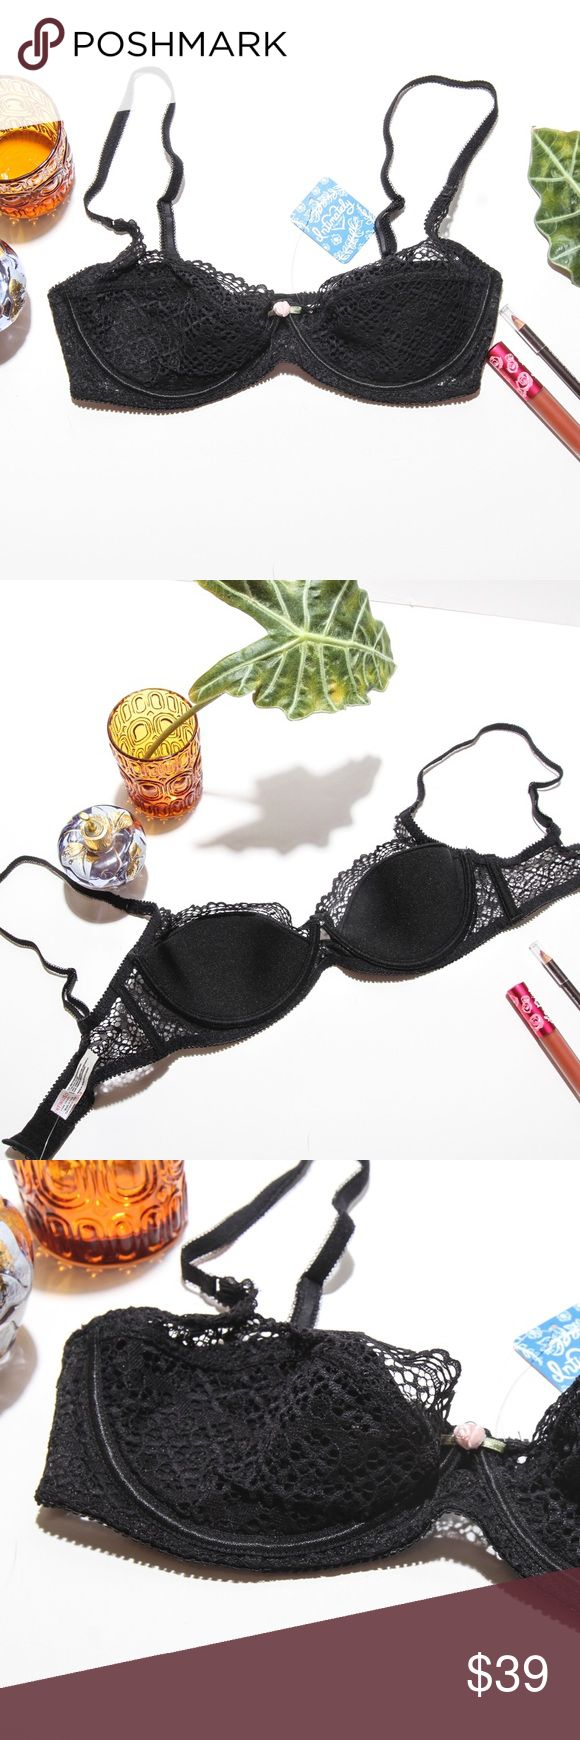 FREE PEOPLE DEMI BRA Awesome Demi Cup! The most flattering bra ever! Free People Intimates & Sleepwear Bras